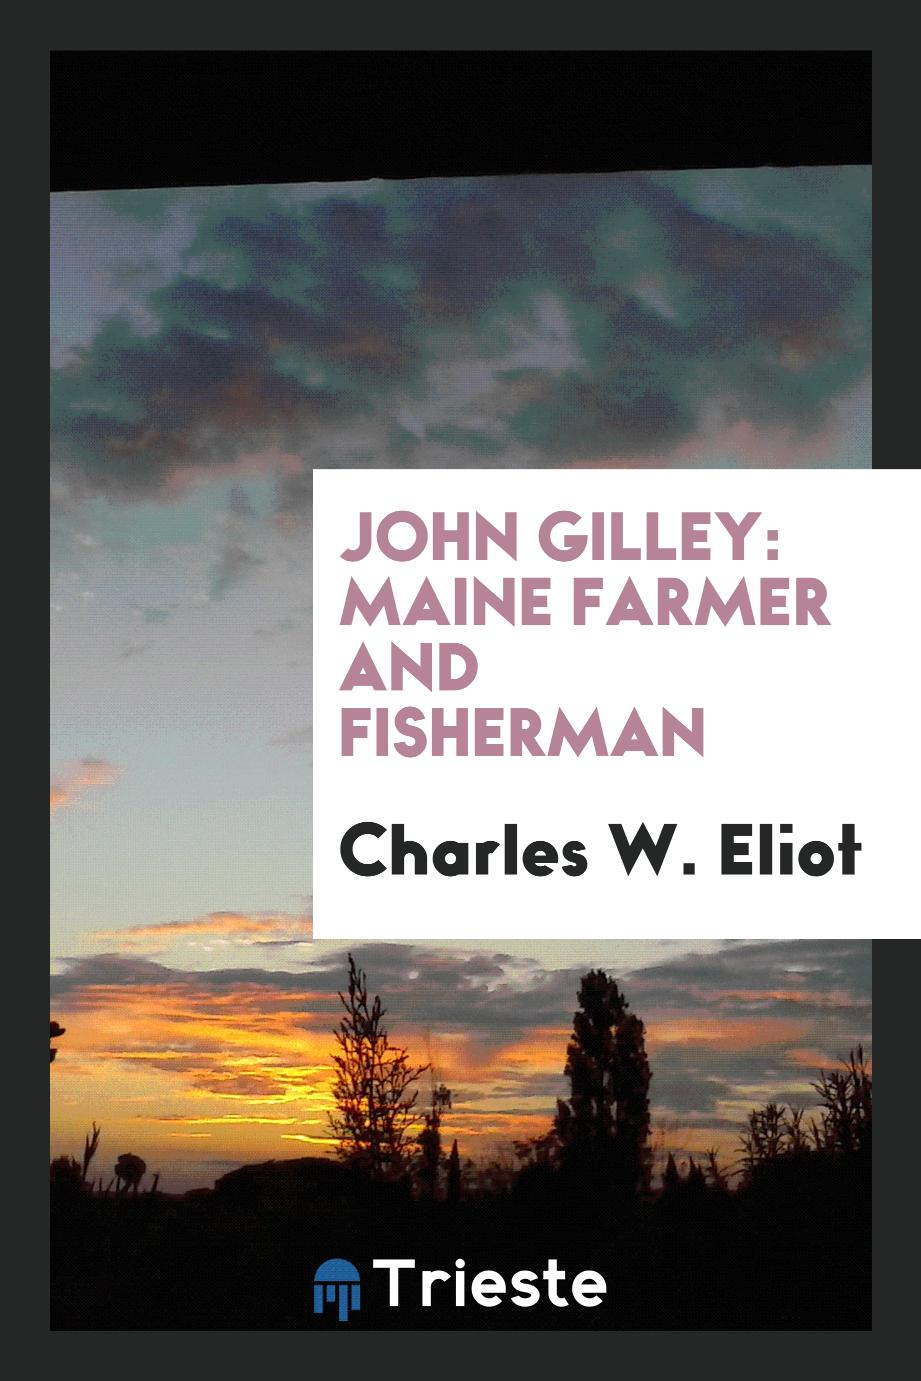 John Gilley: Maine Farmer and Fisherman